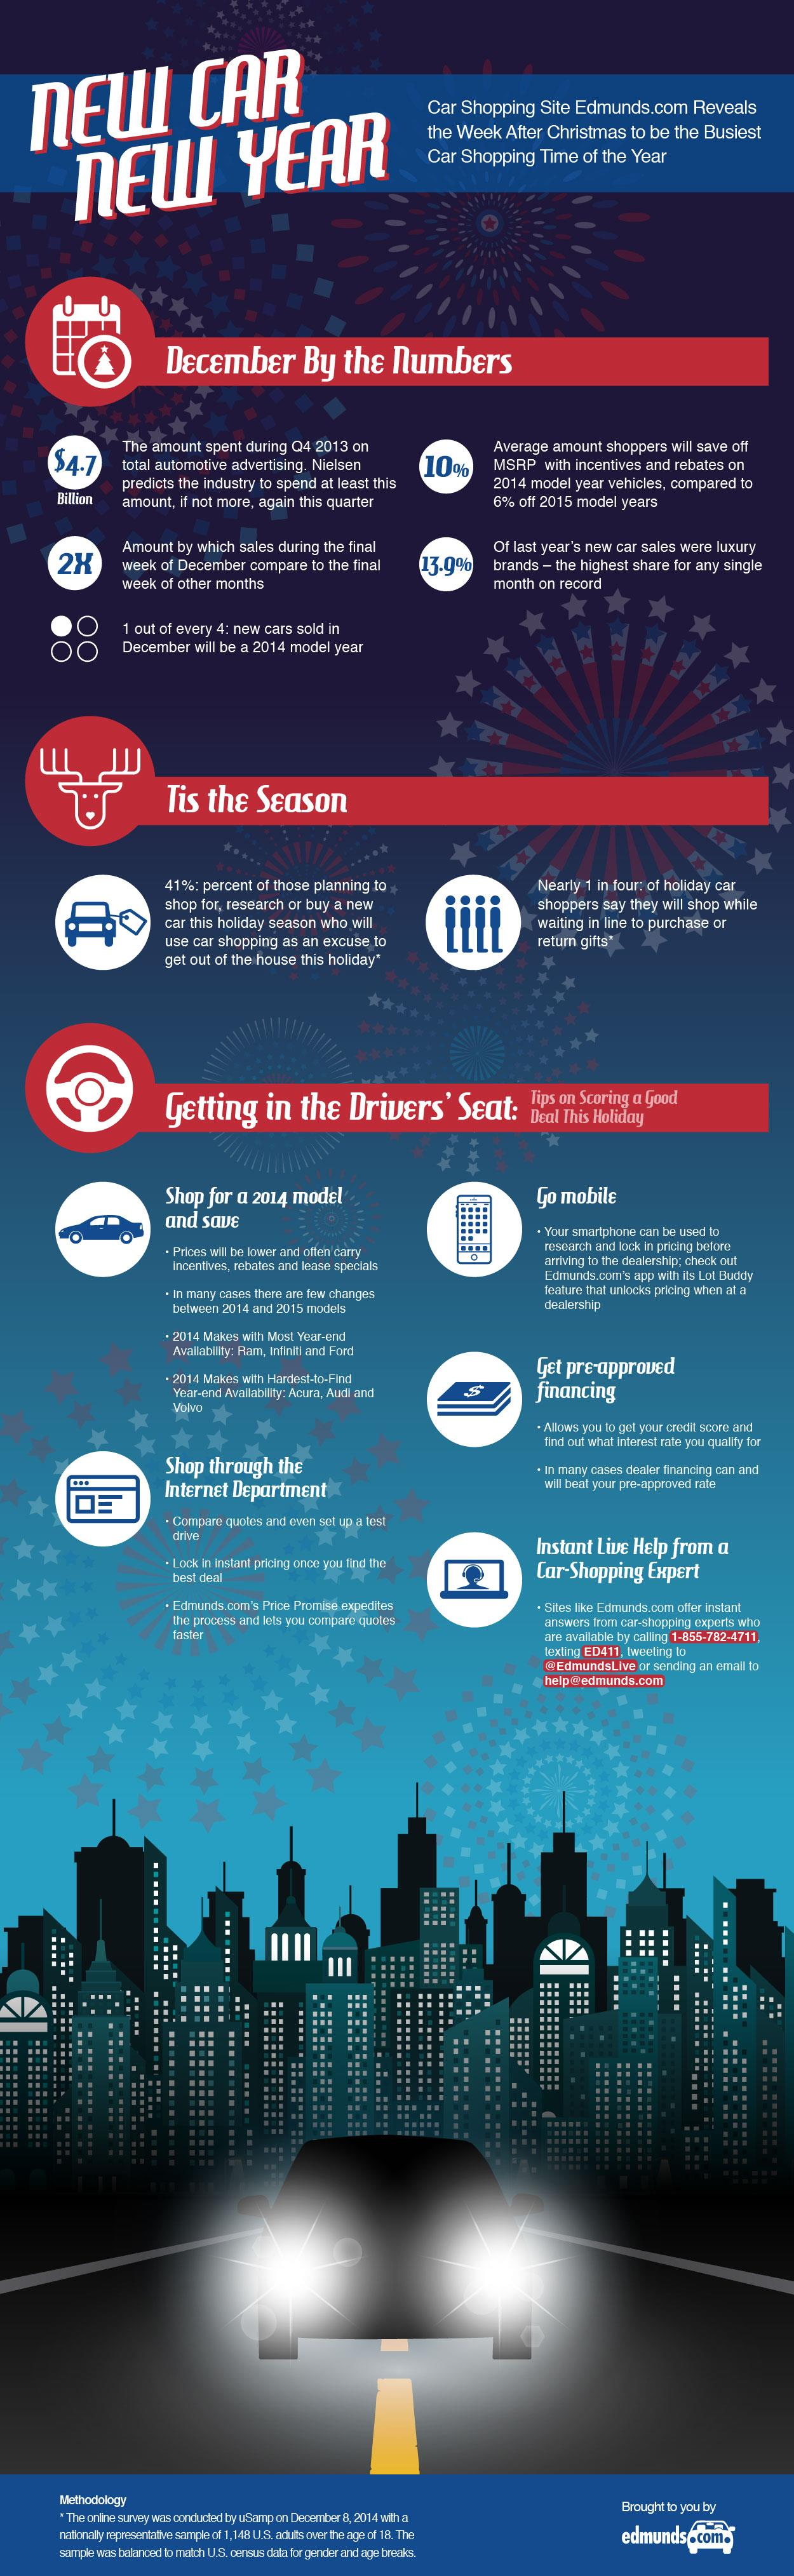 Finding Your New Car for the New Year   Infographic   NewsUSA     Finding Your New Car for the New Year